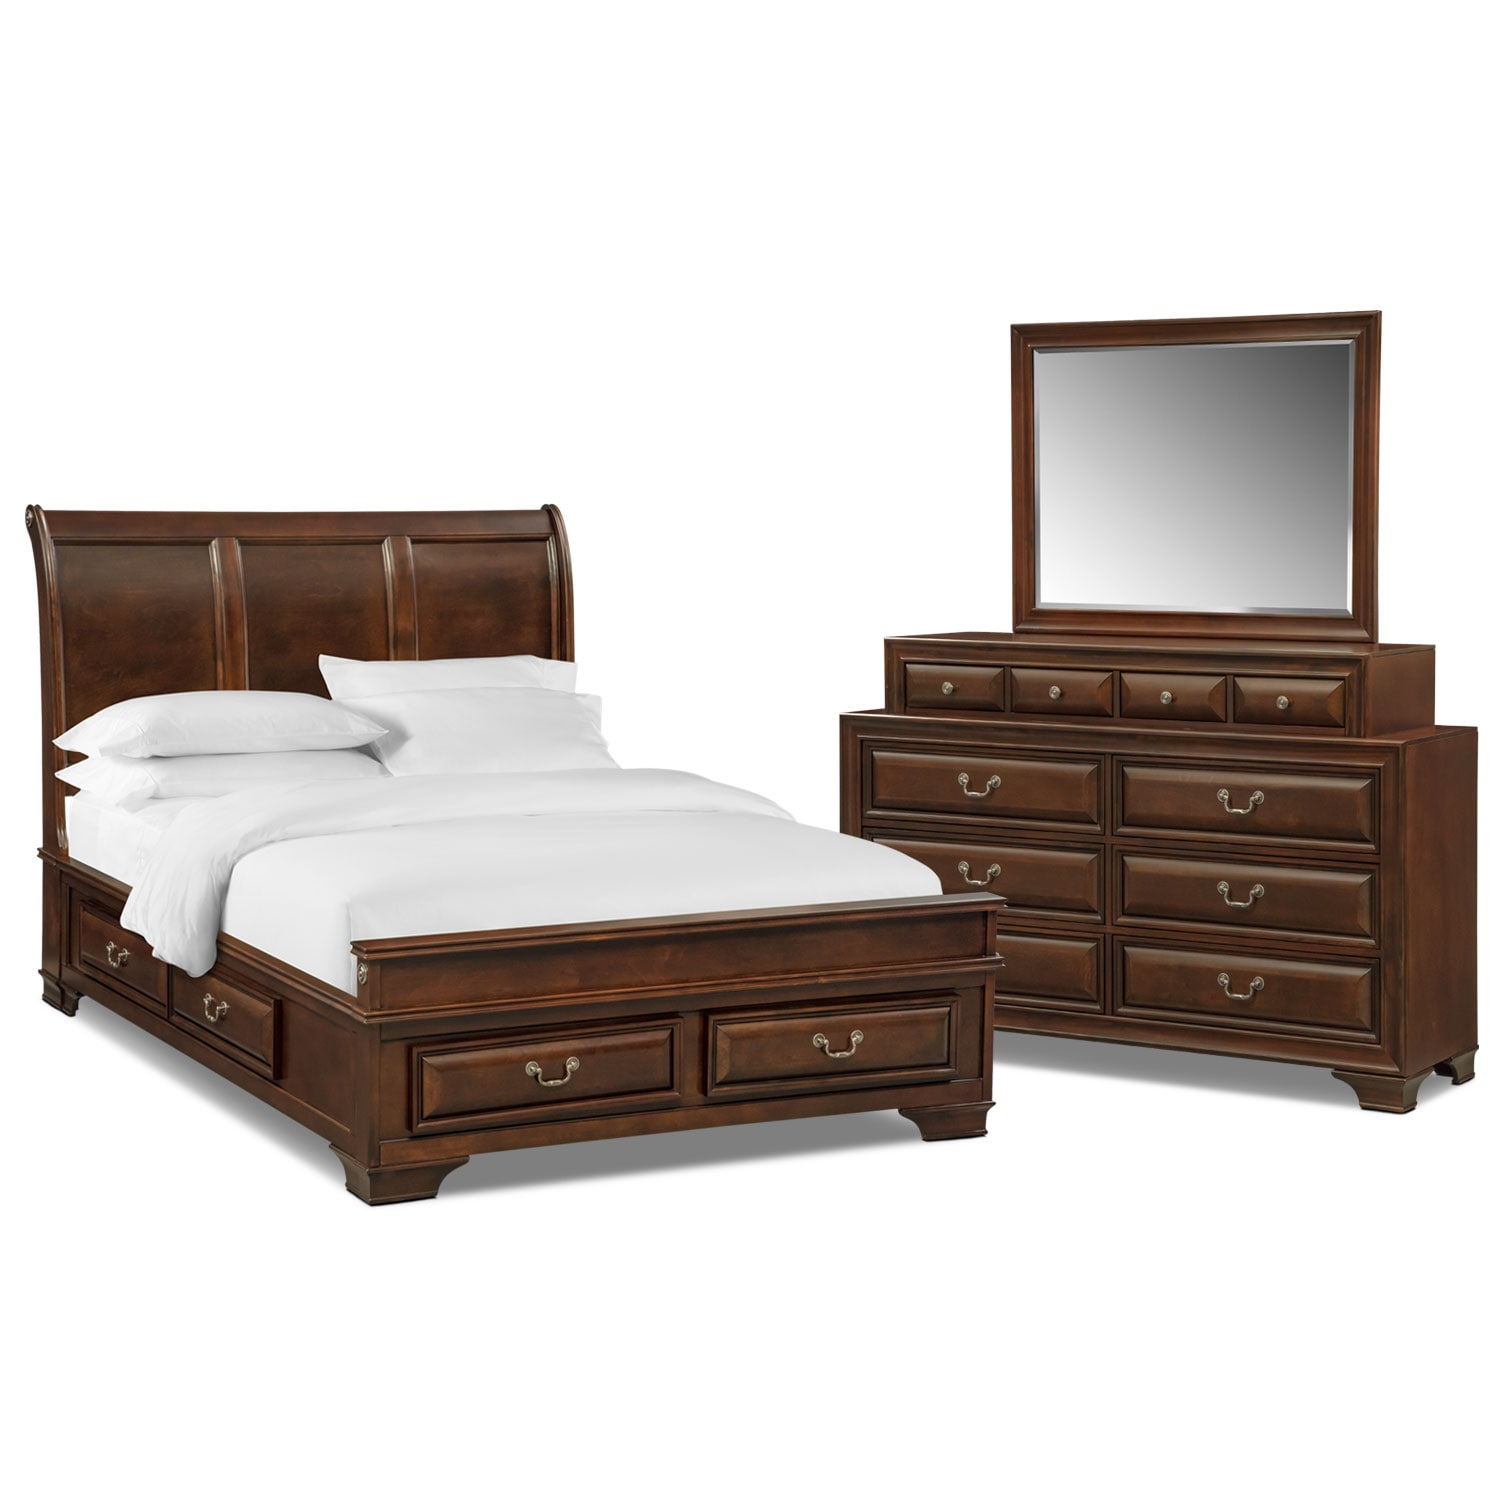 Bedroom Furniture - Sanibelle 5-Piece Queen Storage Bedroom - Mahogany